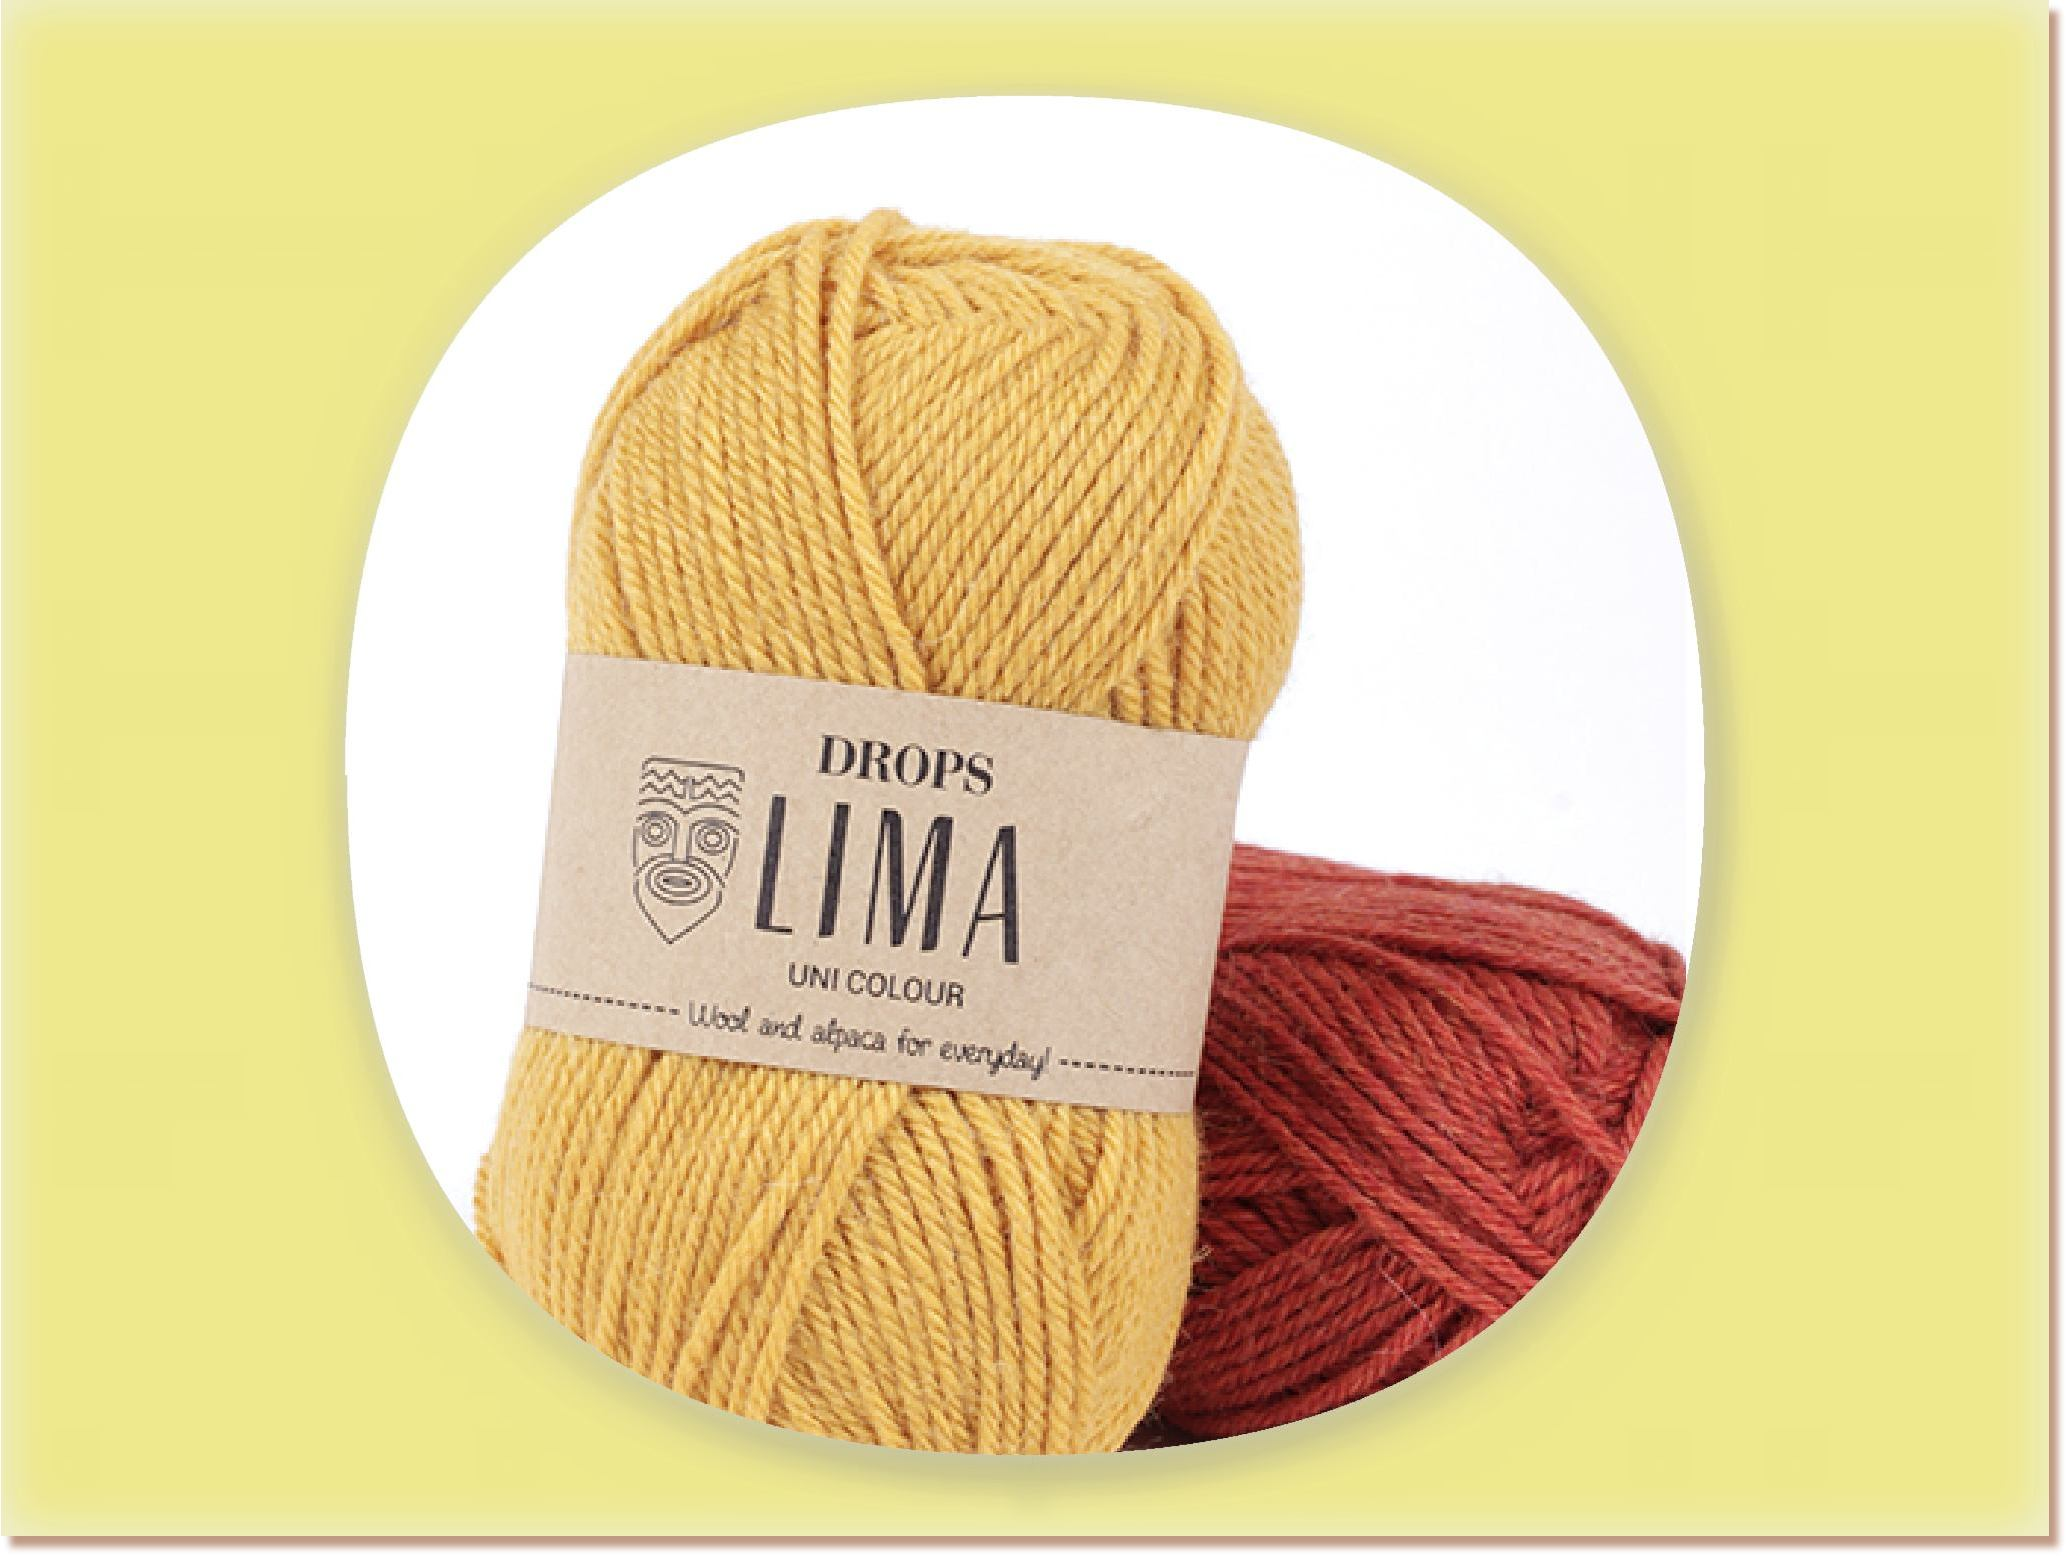 DROPS Lima Uni Colour